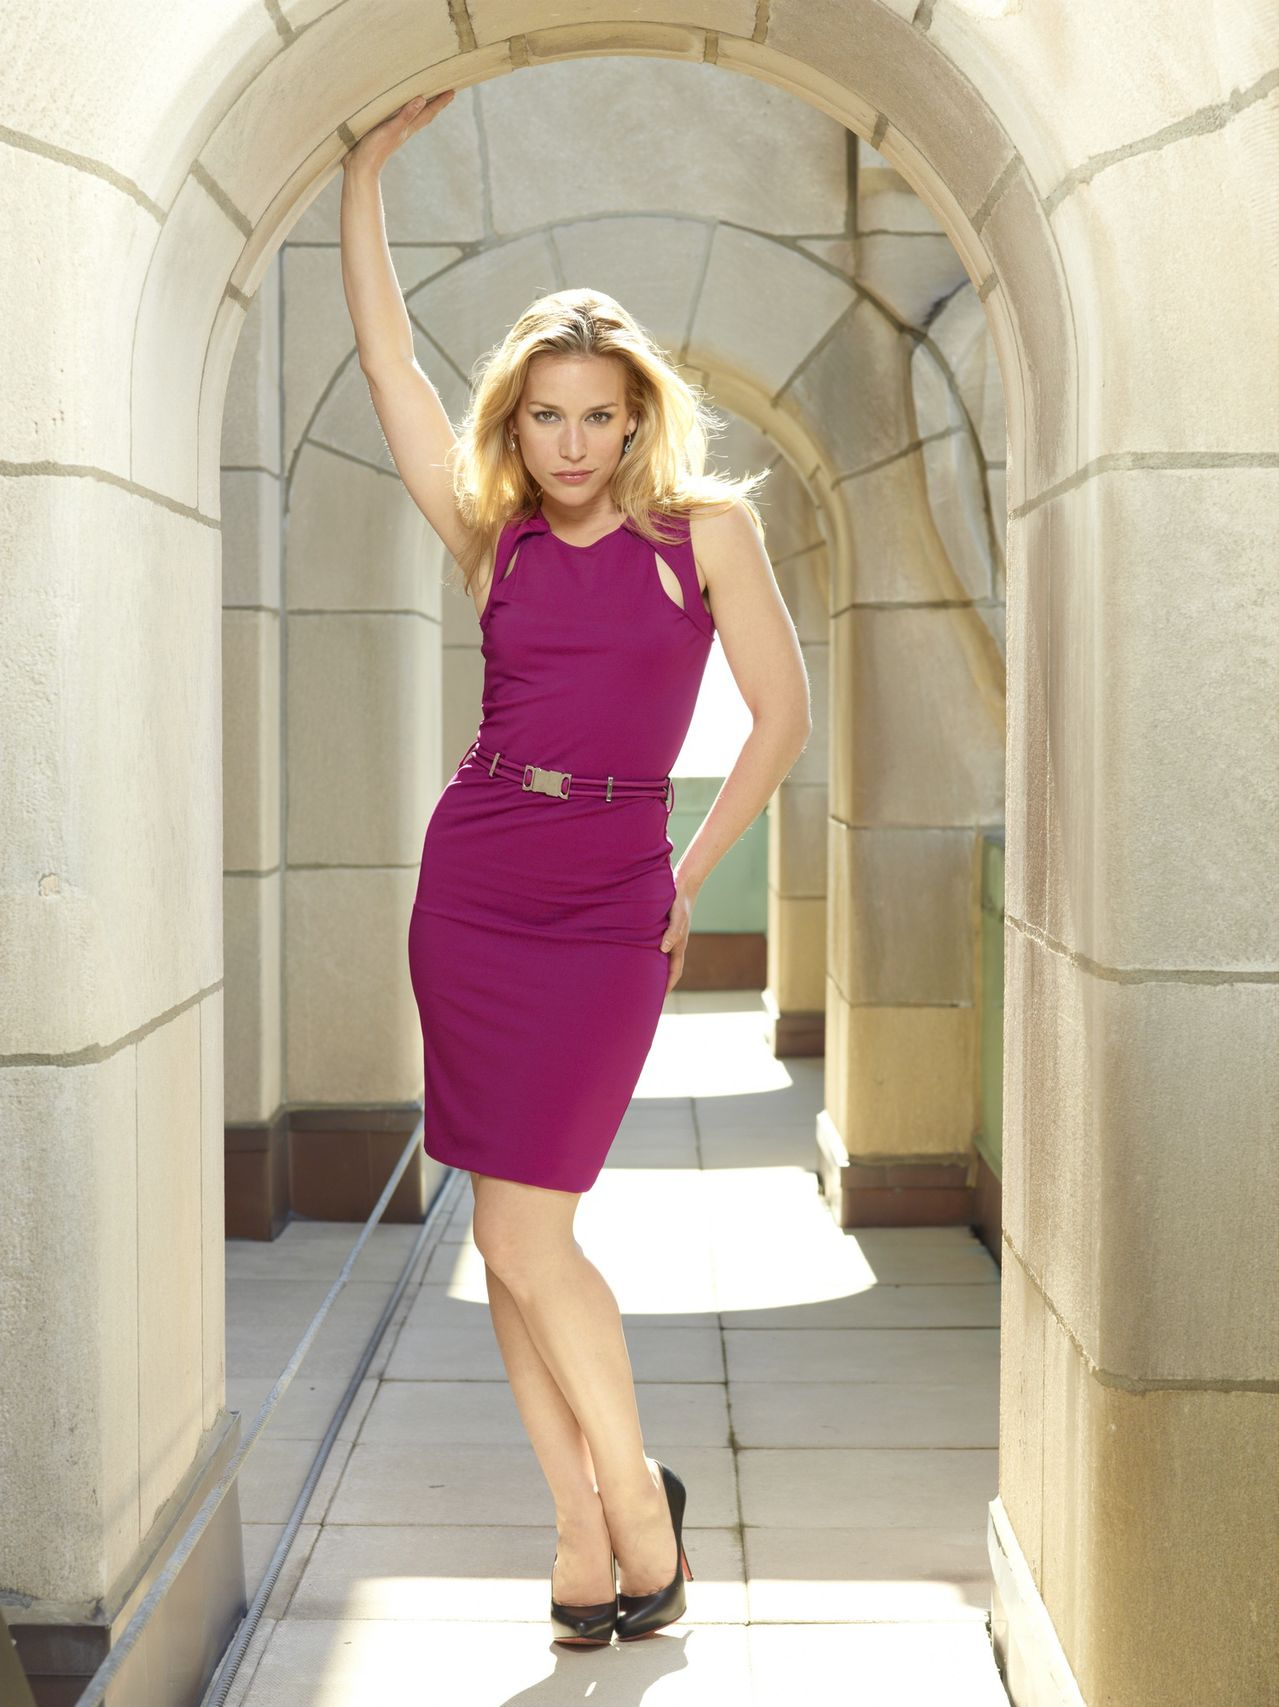 Covert Affairs Season 5 Preview Piper Perabo hot in red dress www.scifiempire.net